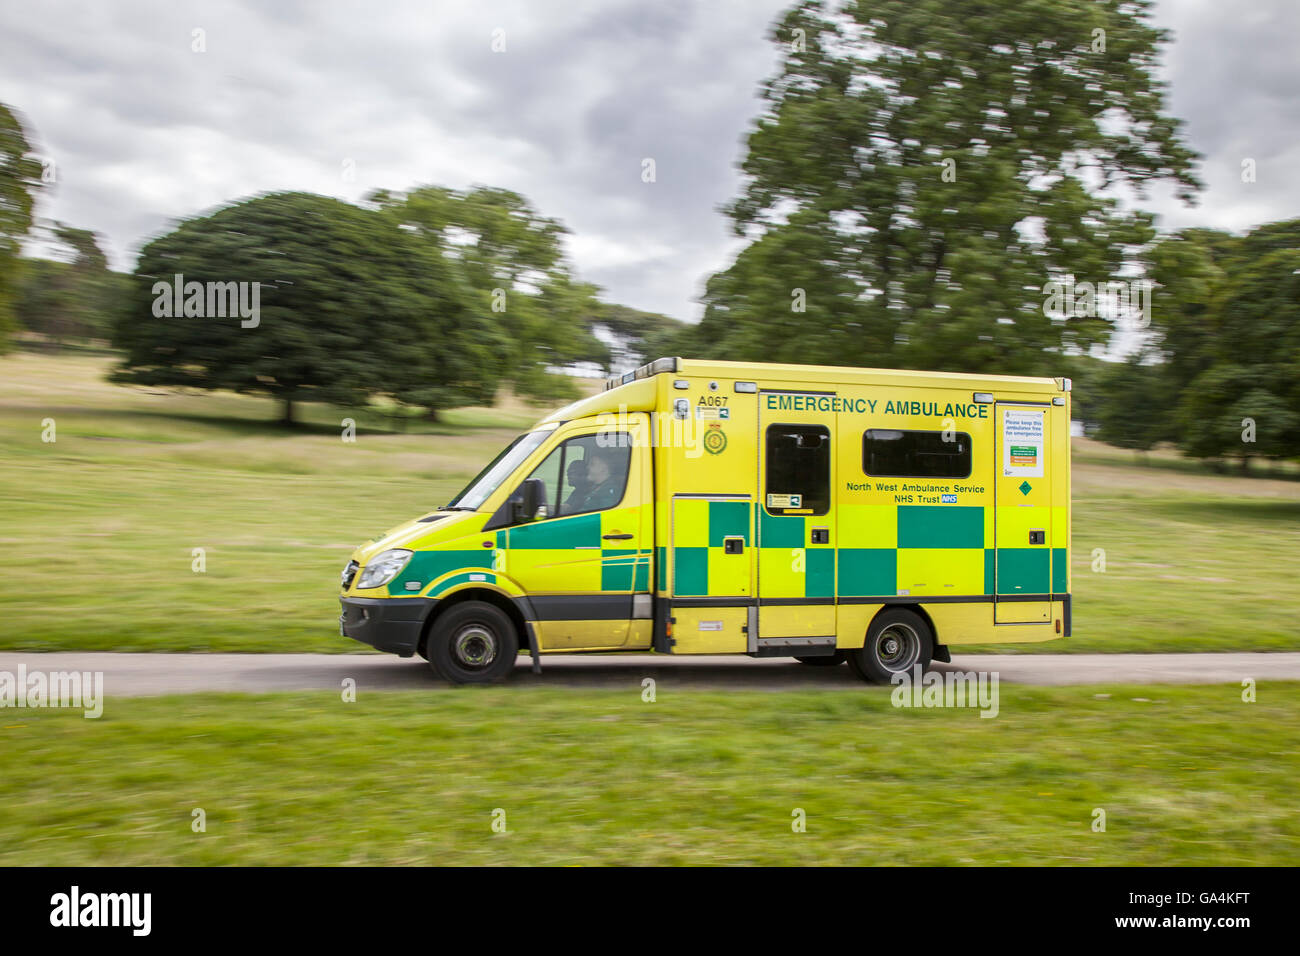 NHS Emergency North west ambulance service countryside vehicle en-route to incident in rural Leighton Hall, Carnforth, - Stock Image